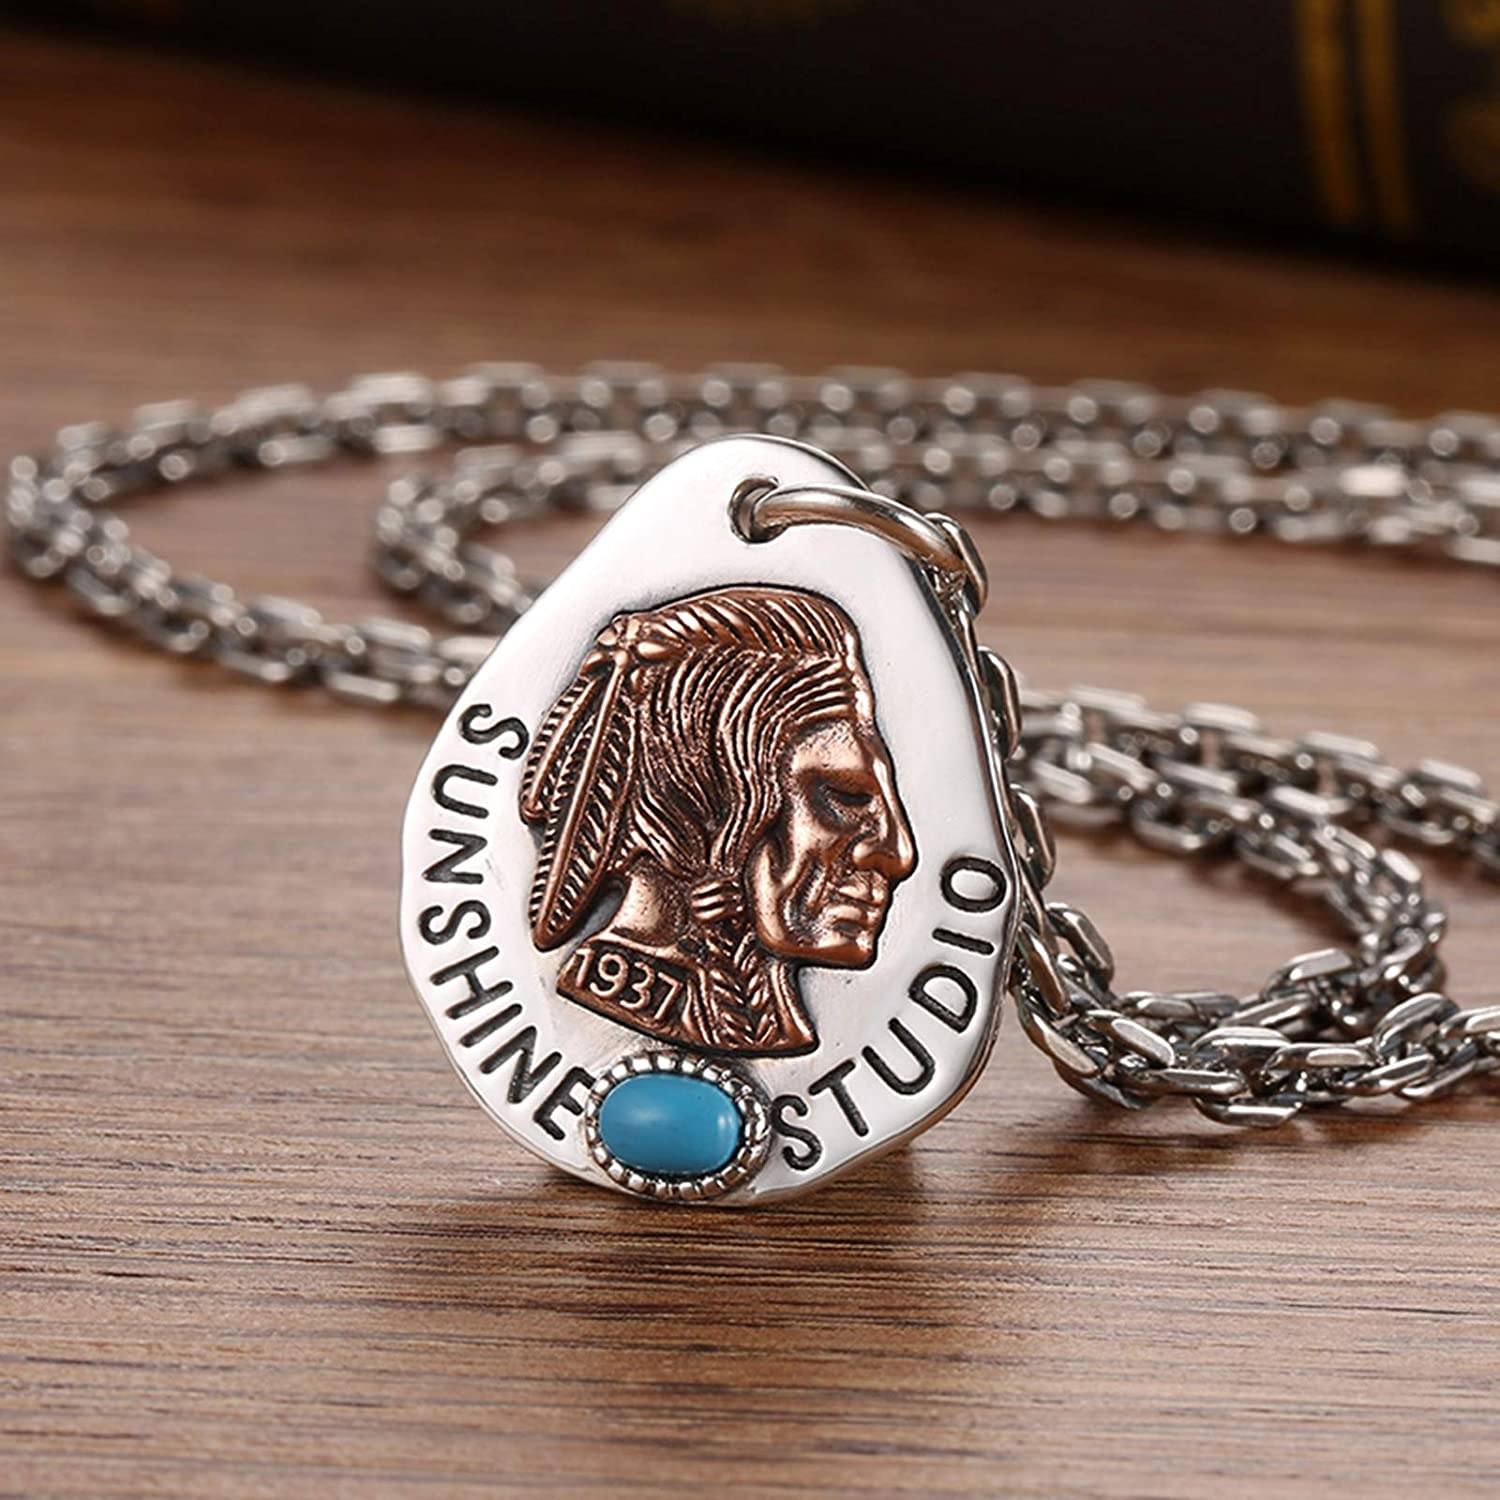 AMDXD Jewelry Sterling Silver Necklace with Pendant Guitar Pick Pendant with Indian Cheef Vintage Necklace for Men